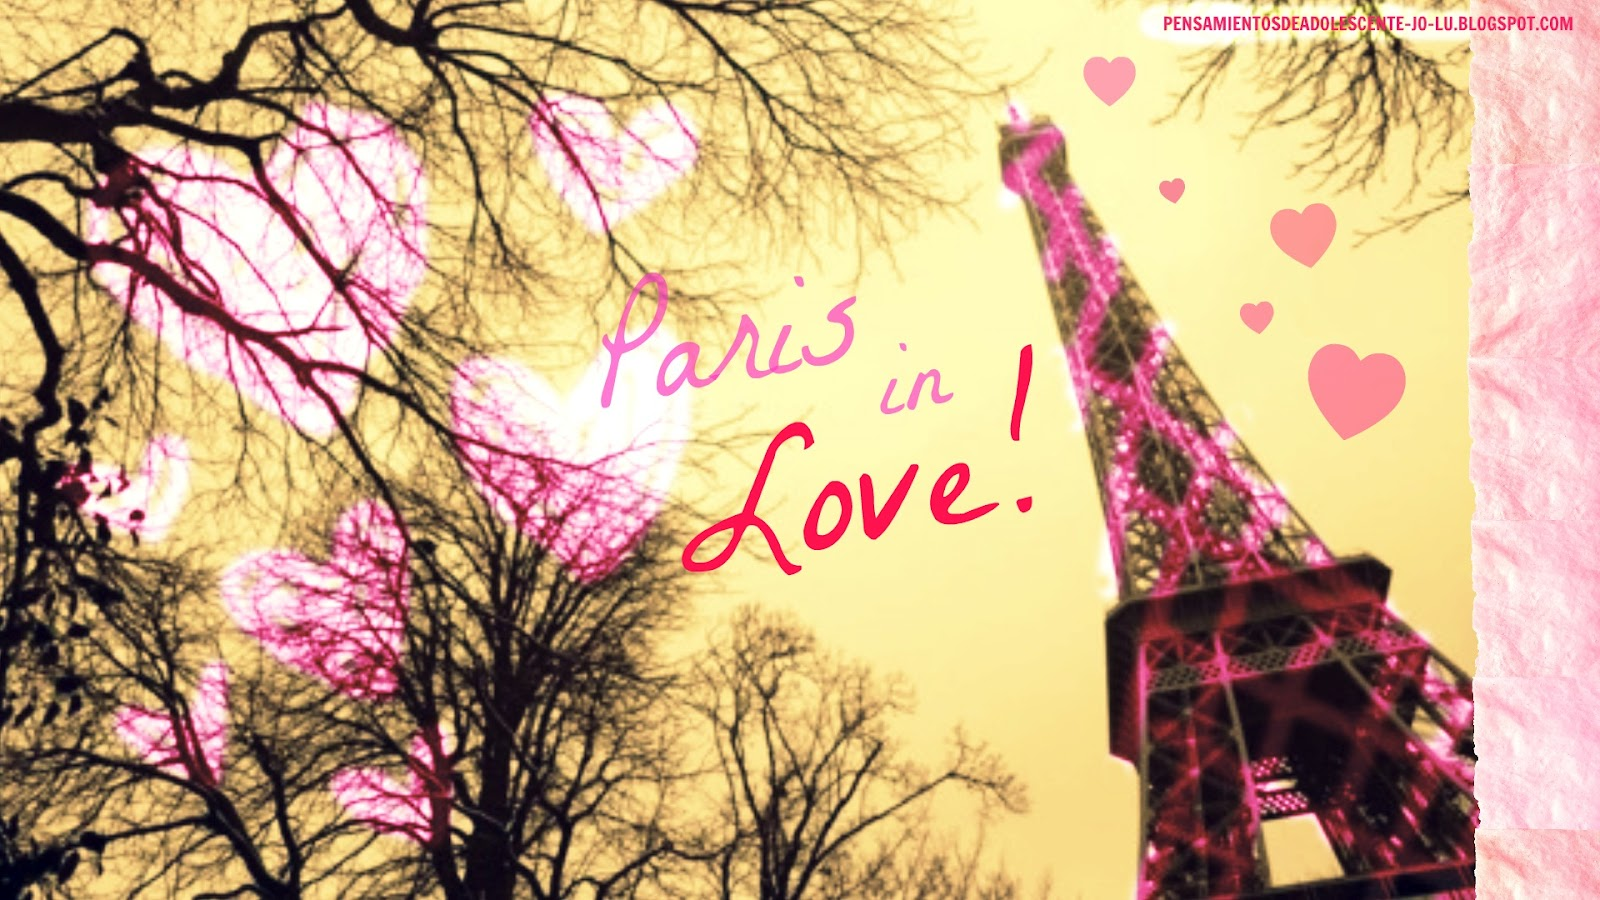 Wallpaper Love Live Tumblr : Paris Is LOVE???? We Heart It paris